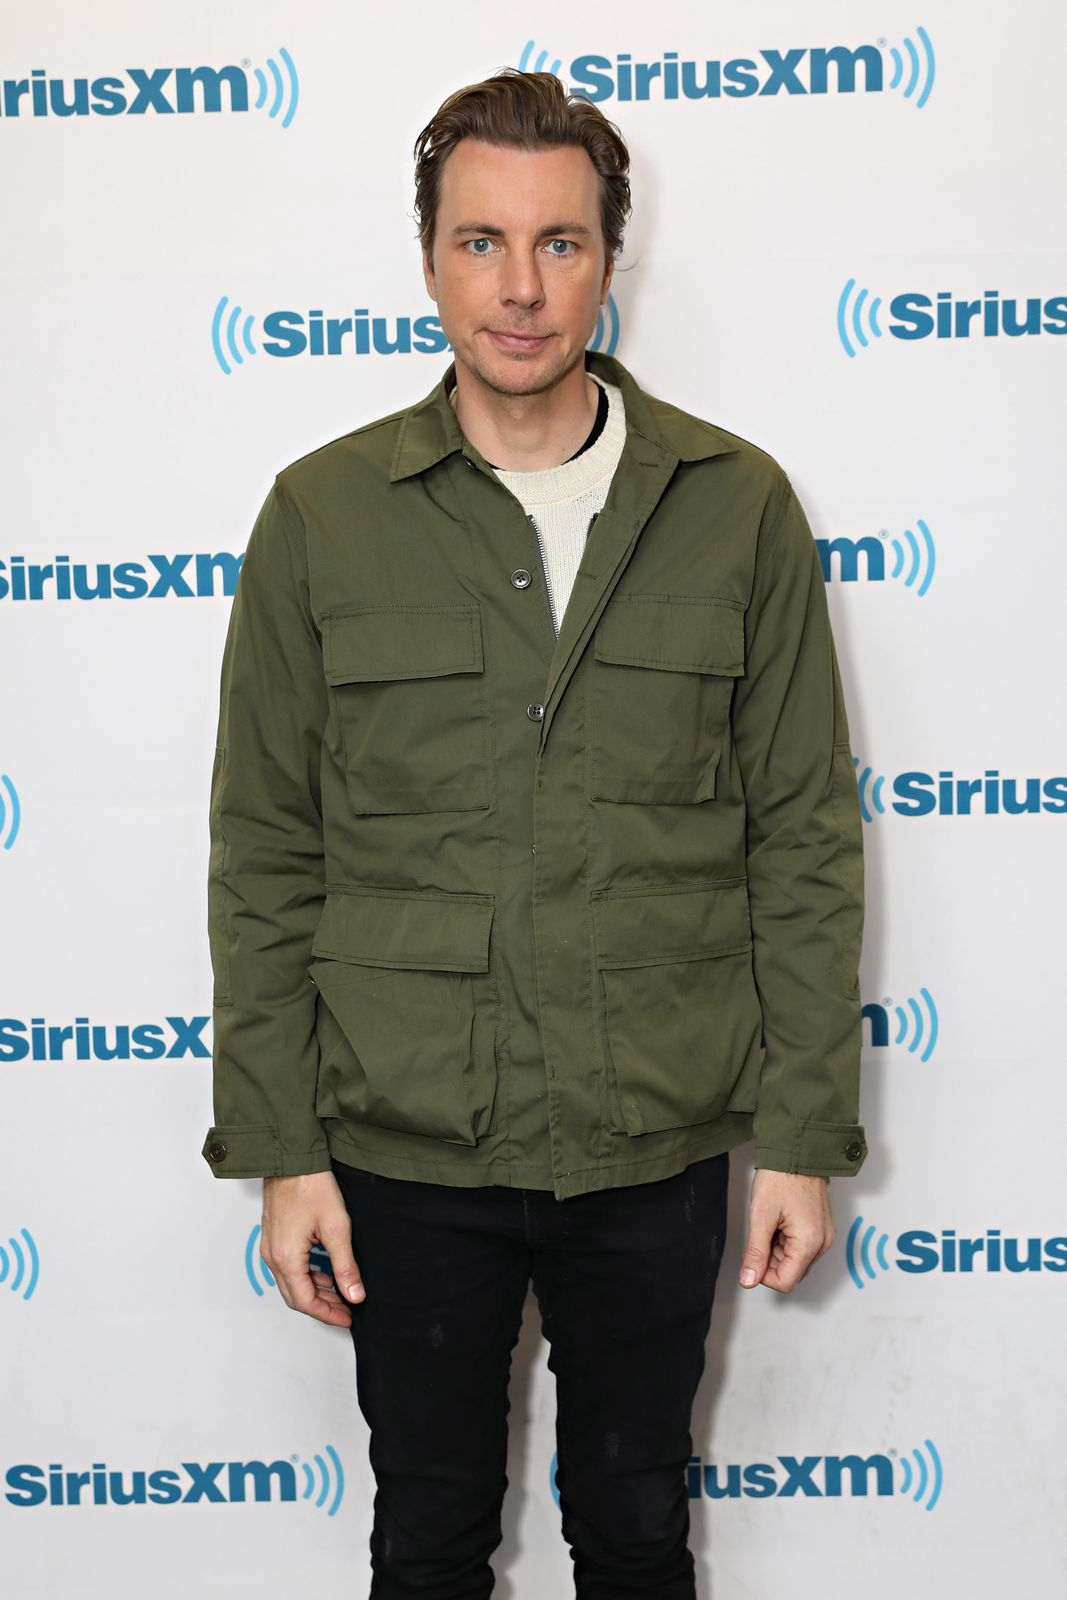 Dax Shepard visits the SiriusXM Studios on March 22, 2017, in New York City | Photo: Cindy Ord/Getty Images